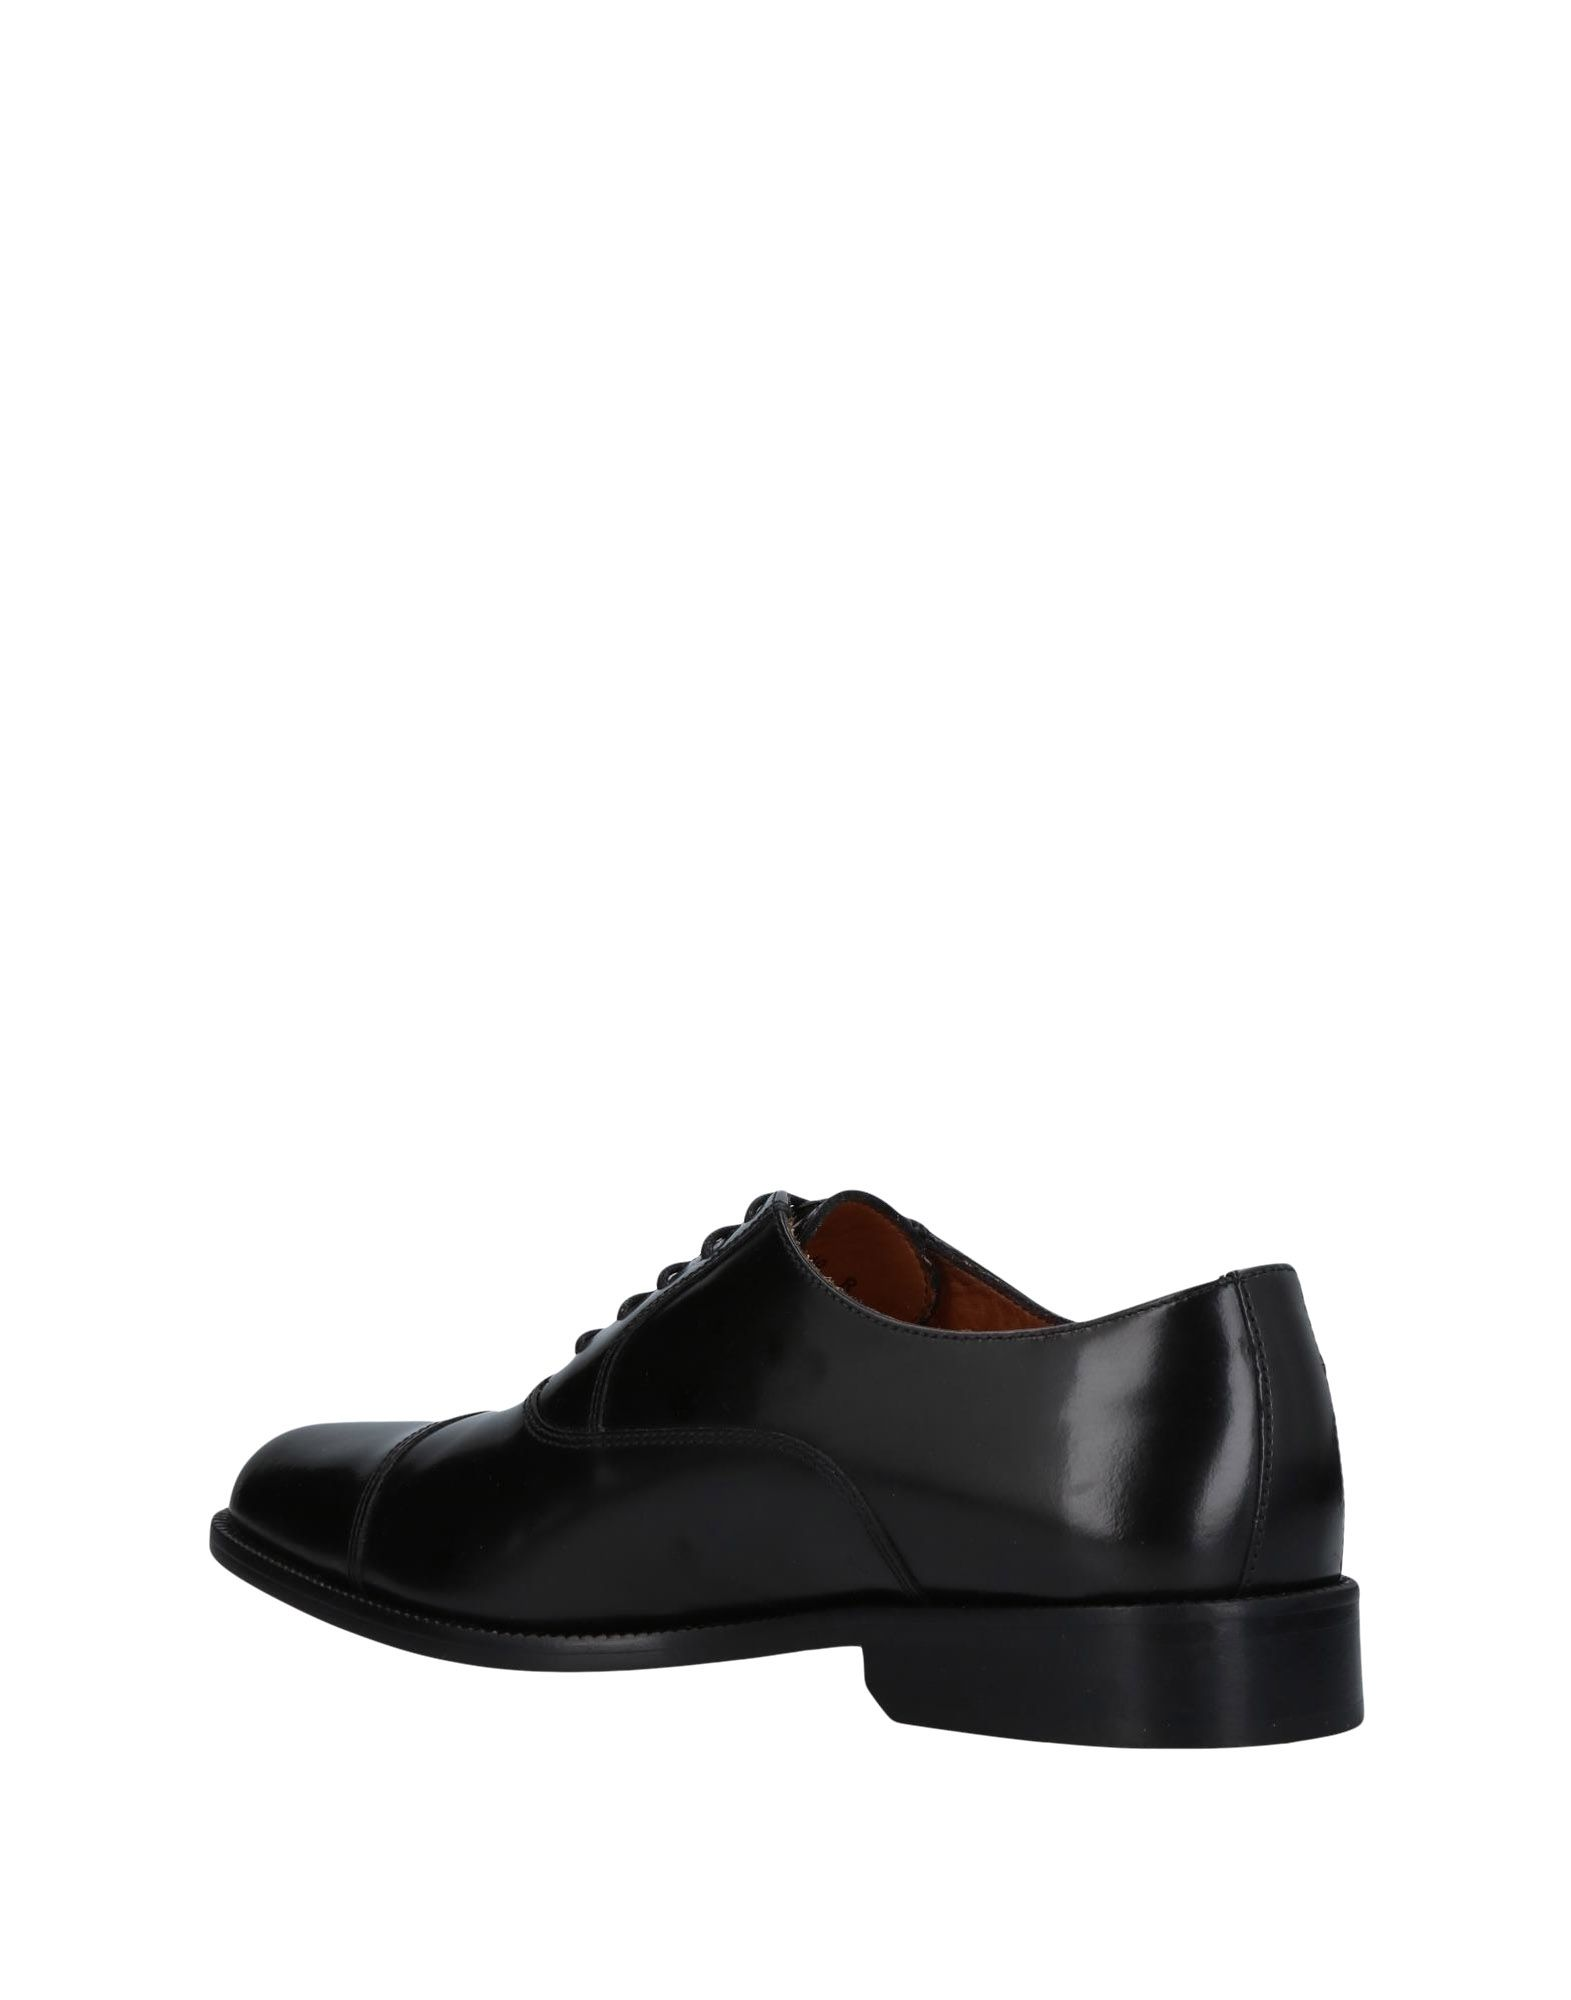 Chaussures À Lacets Marco Ferretti Homme - Chaussures À Lacets Marco Ferretti sur